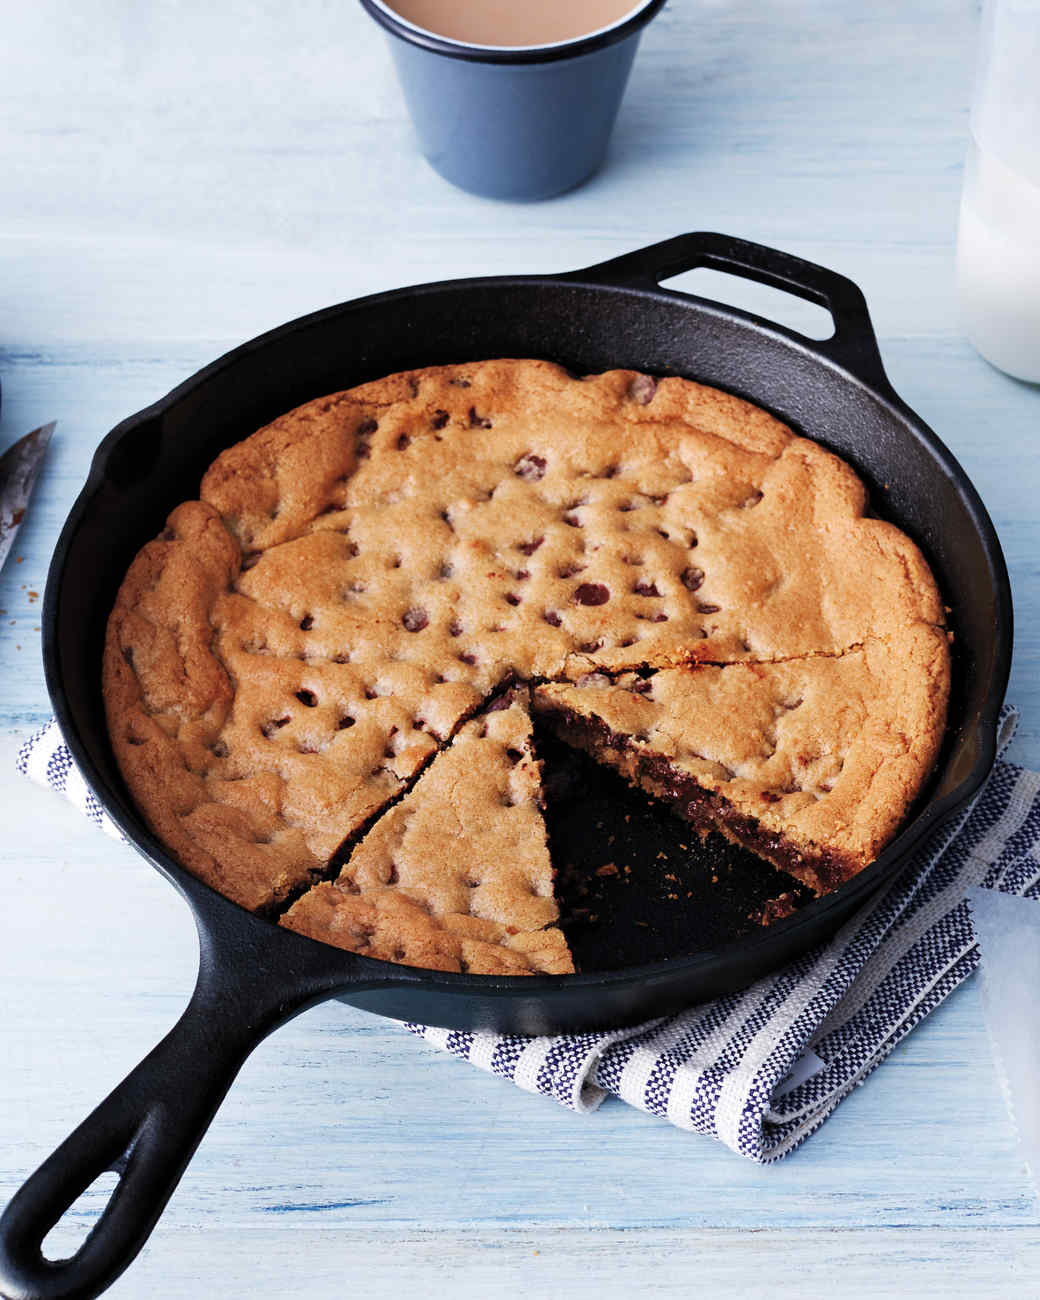 Skillet Chocolate Chip Cookie Recipe & Video | Martha Stewart